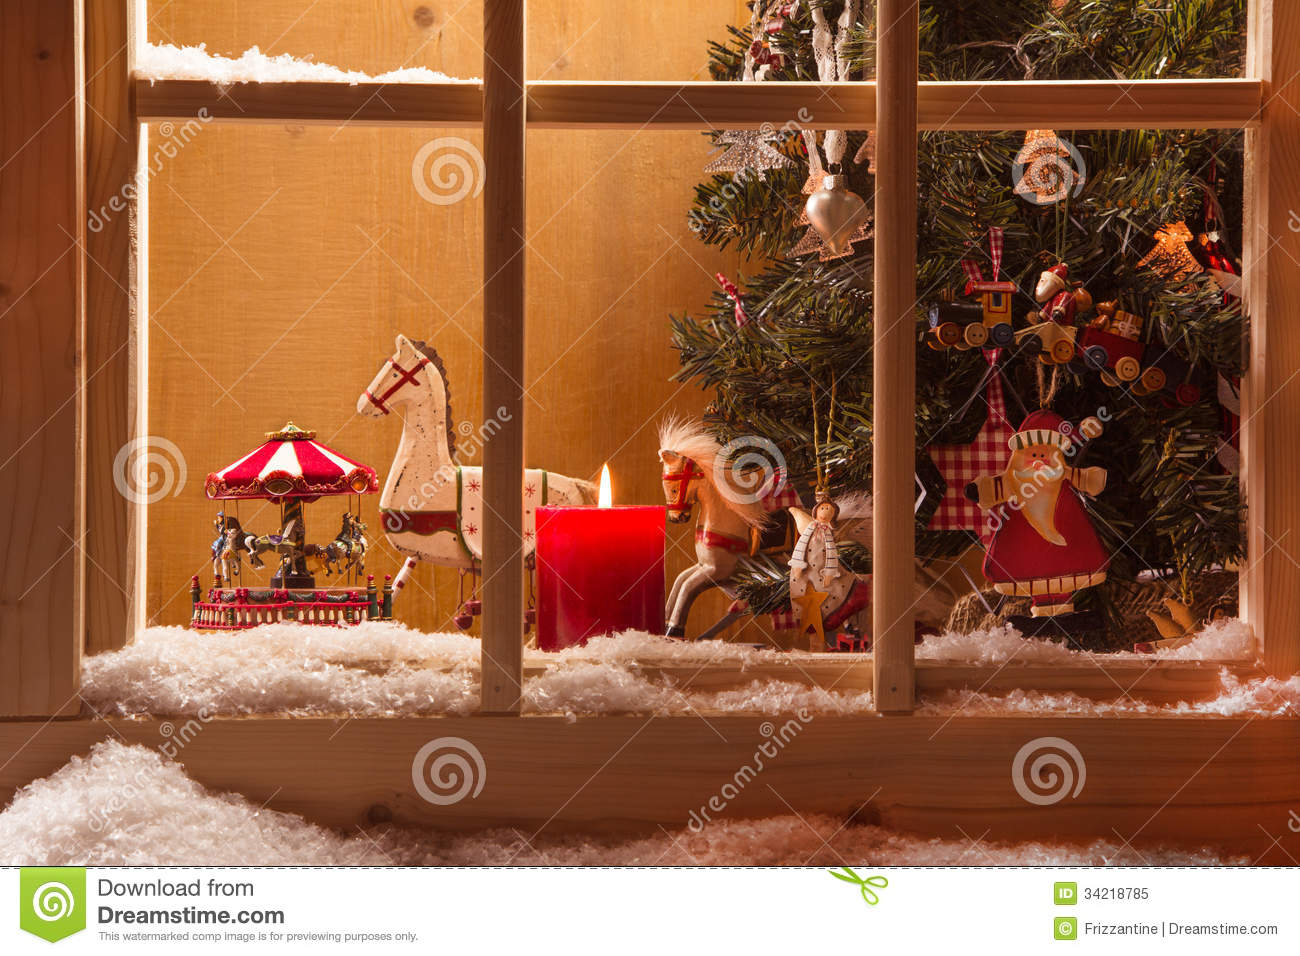 atmospheric christmas window sill decorationsnowtre ecandler